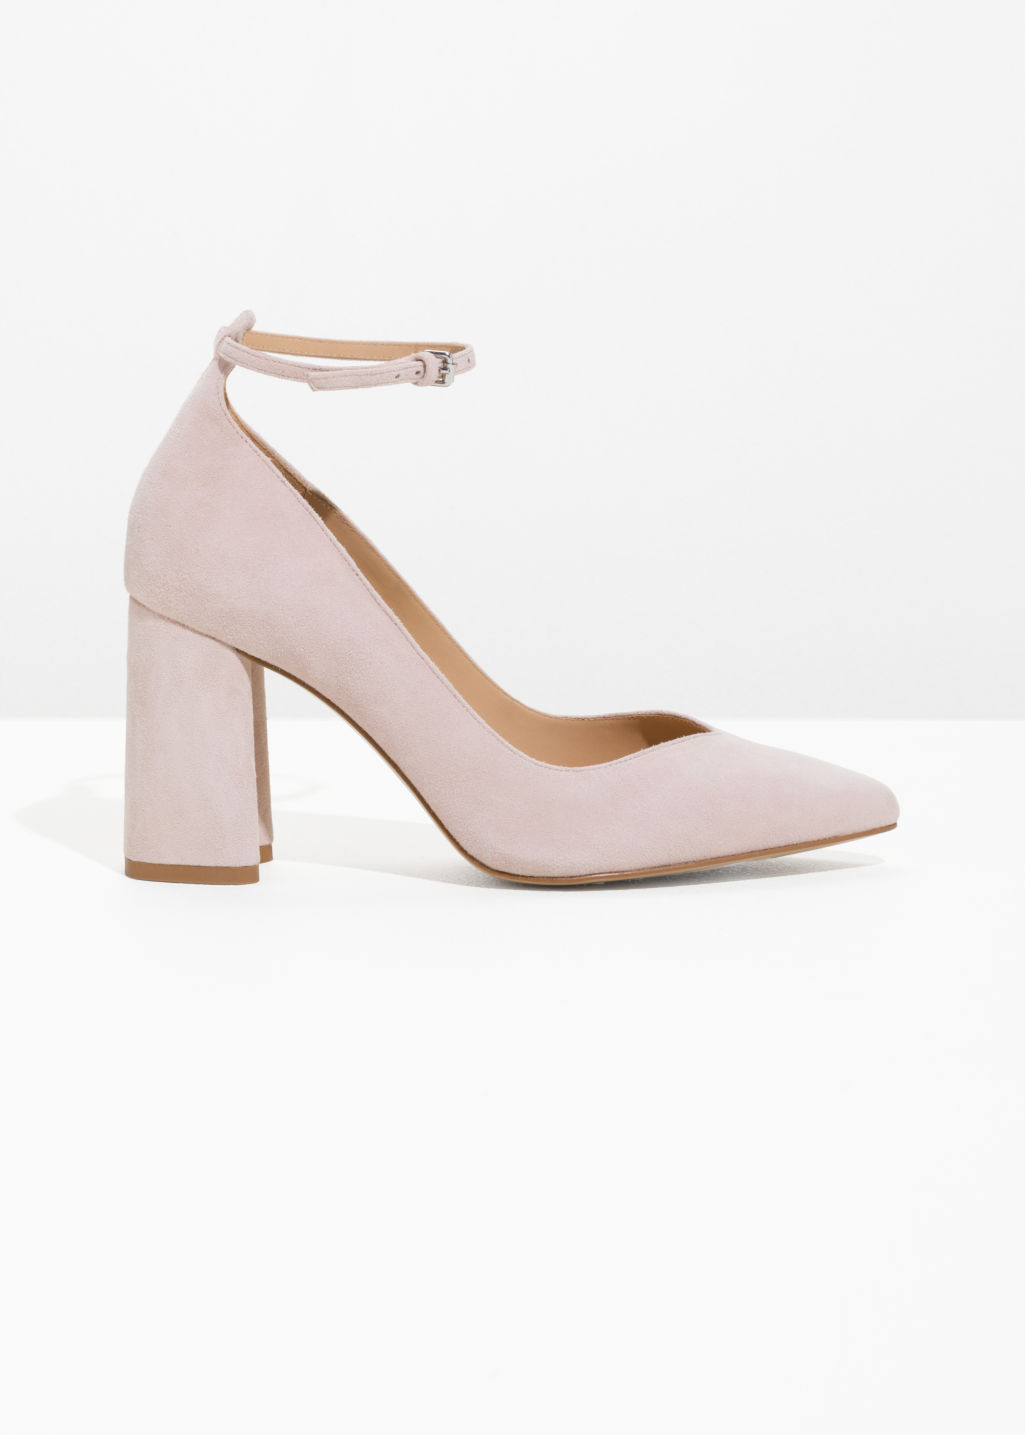 & OTHER STORIES Curved Ankle Strap Pumps 5uiGY1Uk7